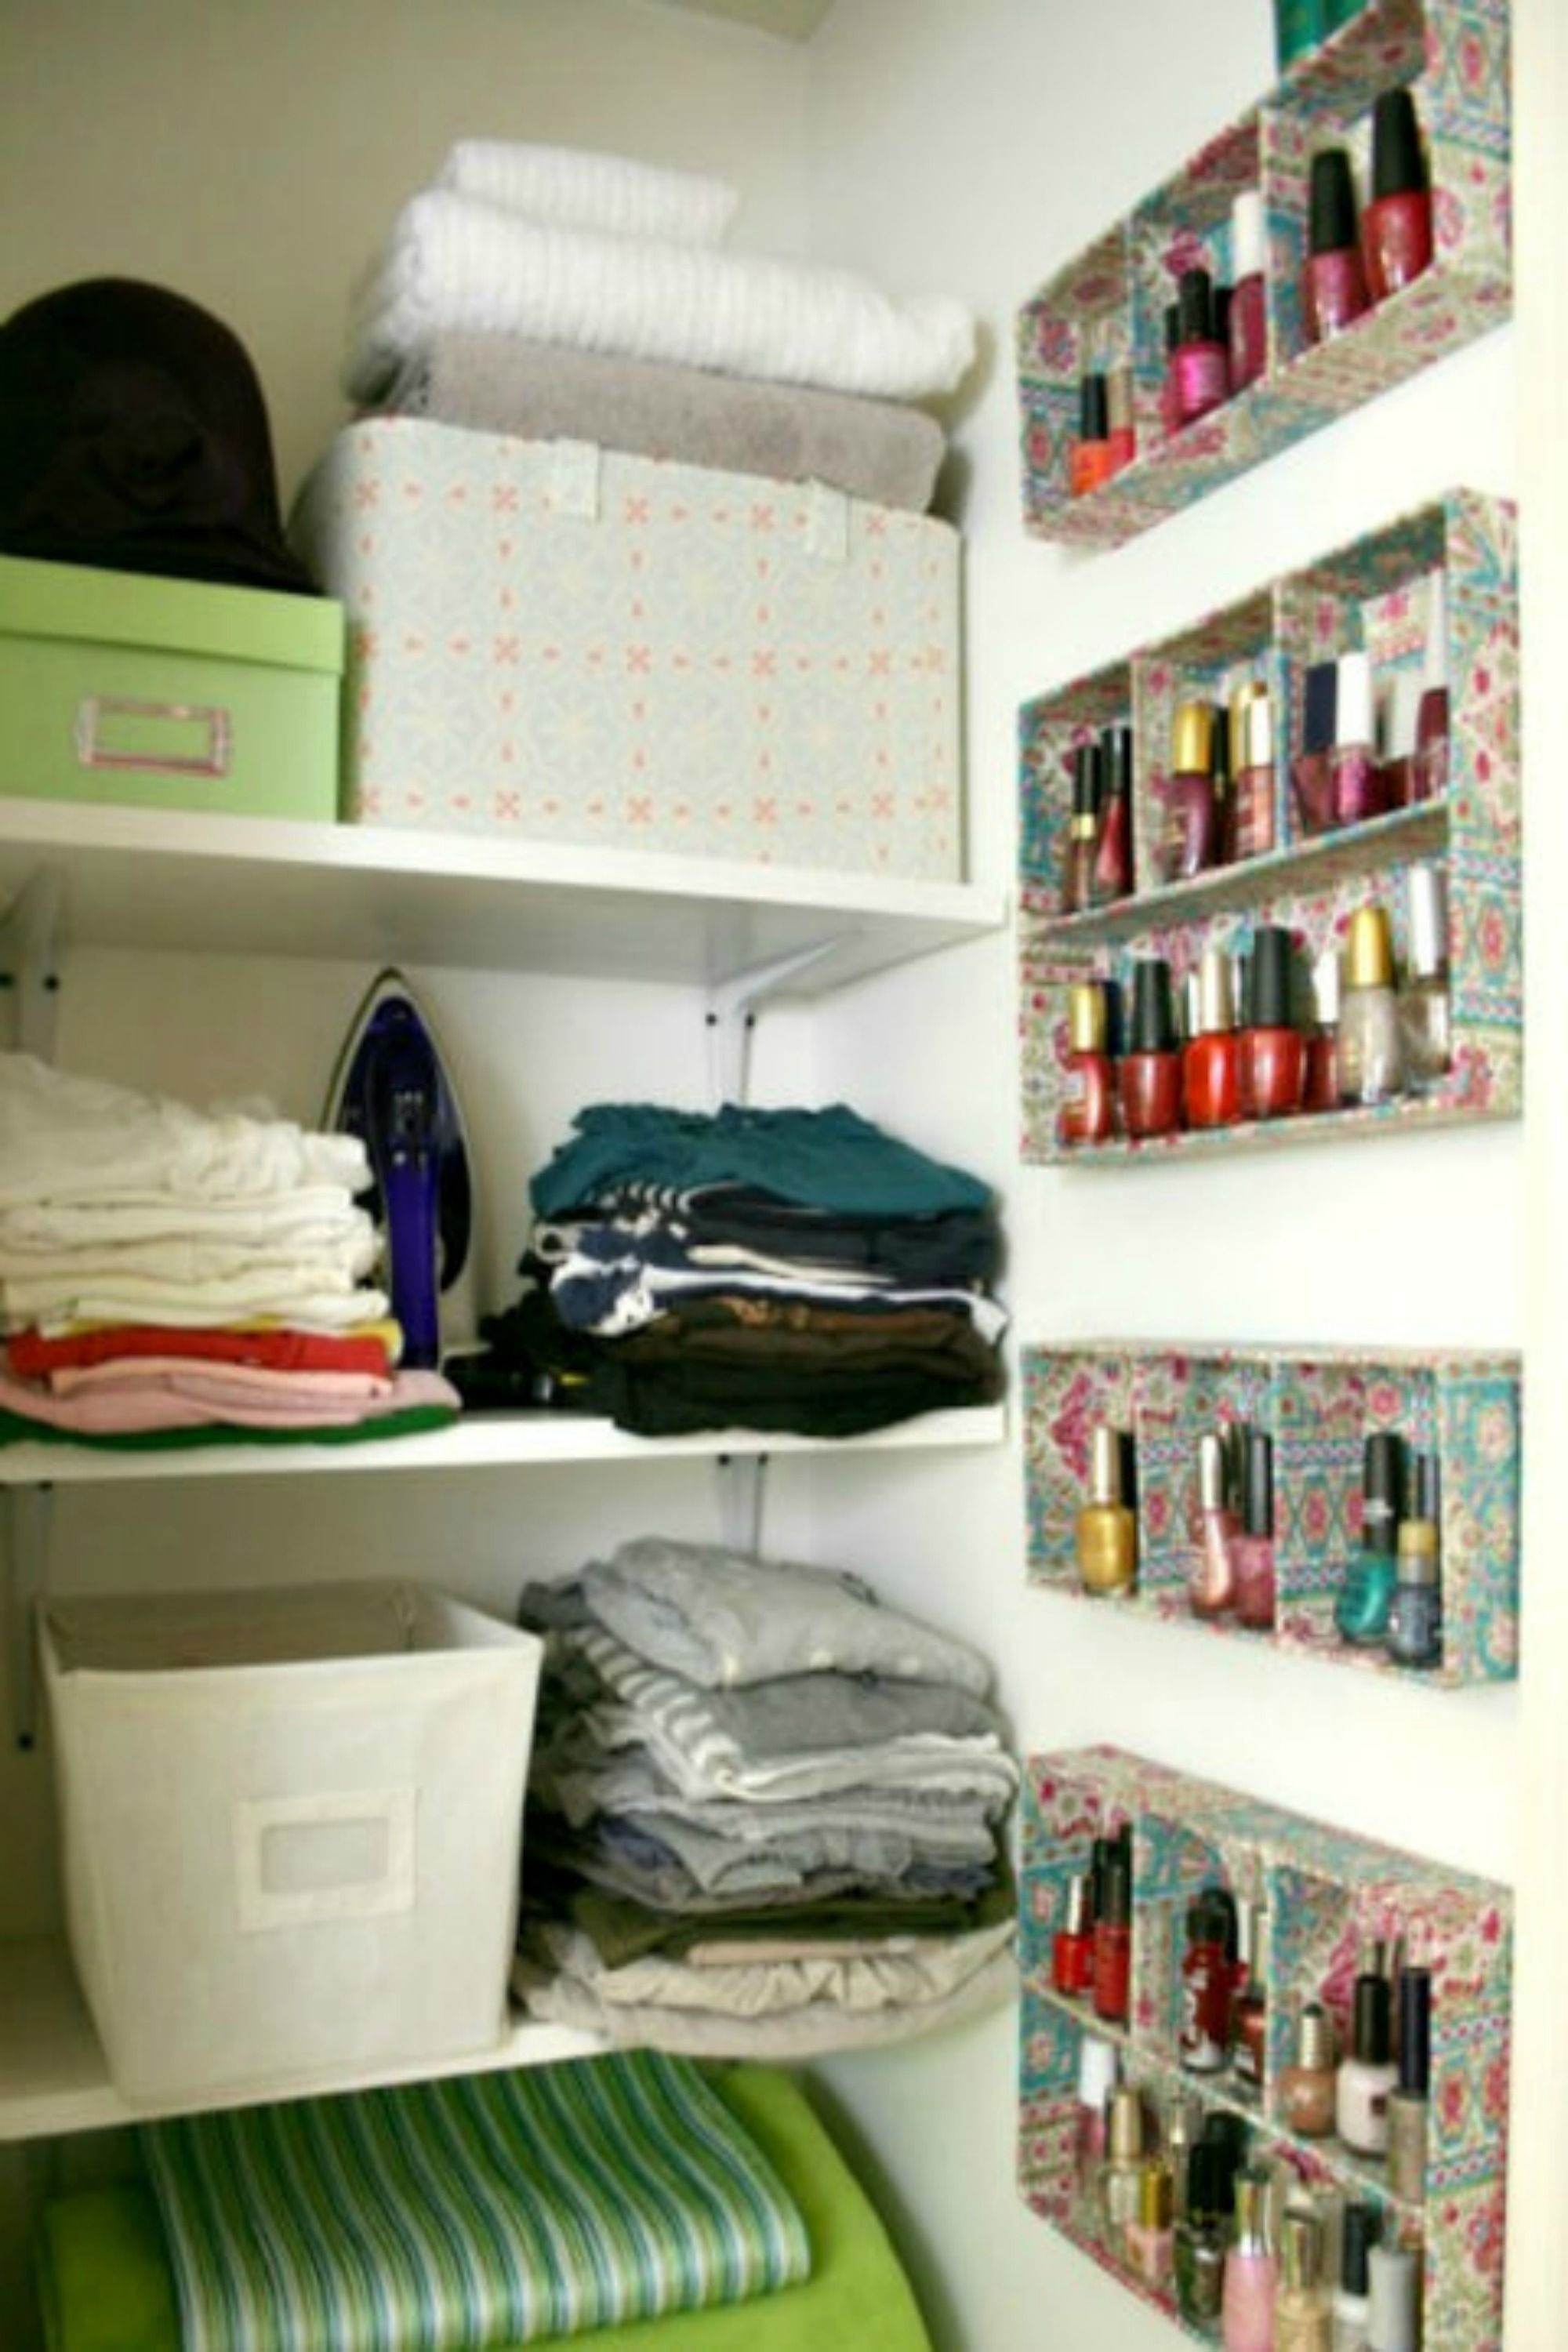 Home Organization 100 Home Organization Tips How To Organize Your Home